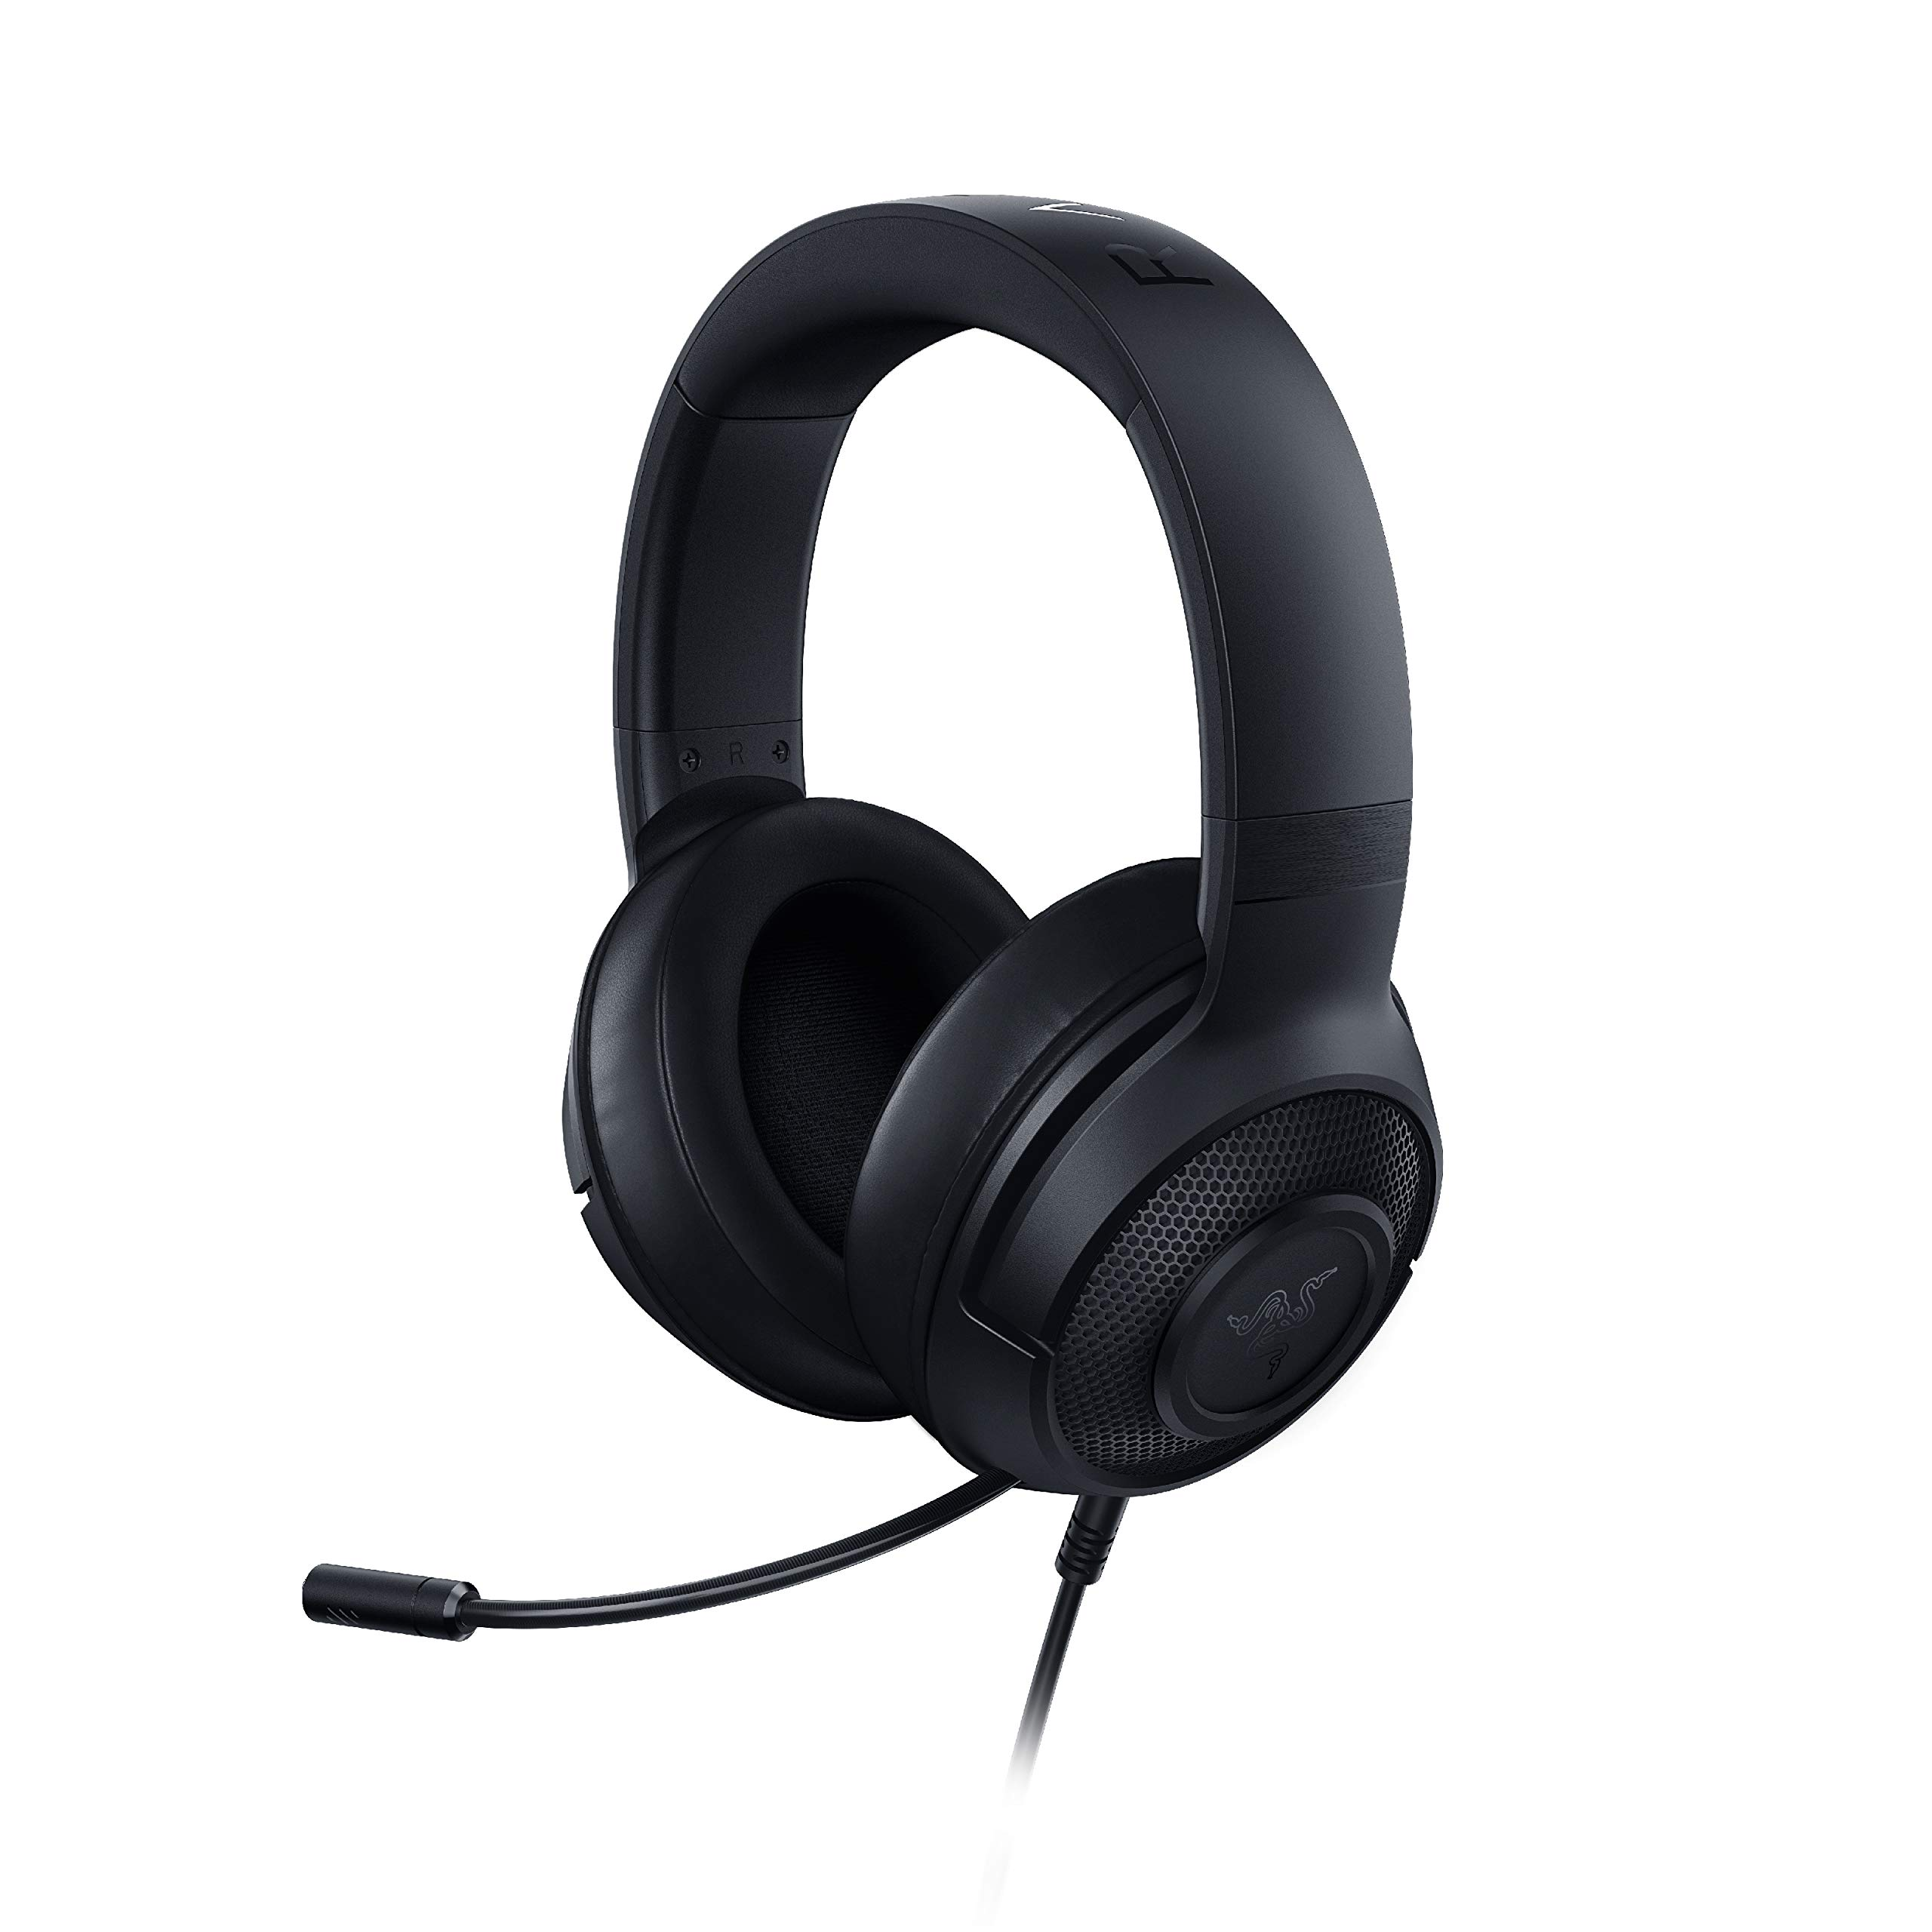 Razer Kraken X Ultralight Gaming Headset - [Matte Black]: 7.1 Surround Sound Capable on PC Only - Lightweight Frame - Bendable Cardioid Microphone - for PC, Xbox, PS4, Nintendo Switch